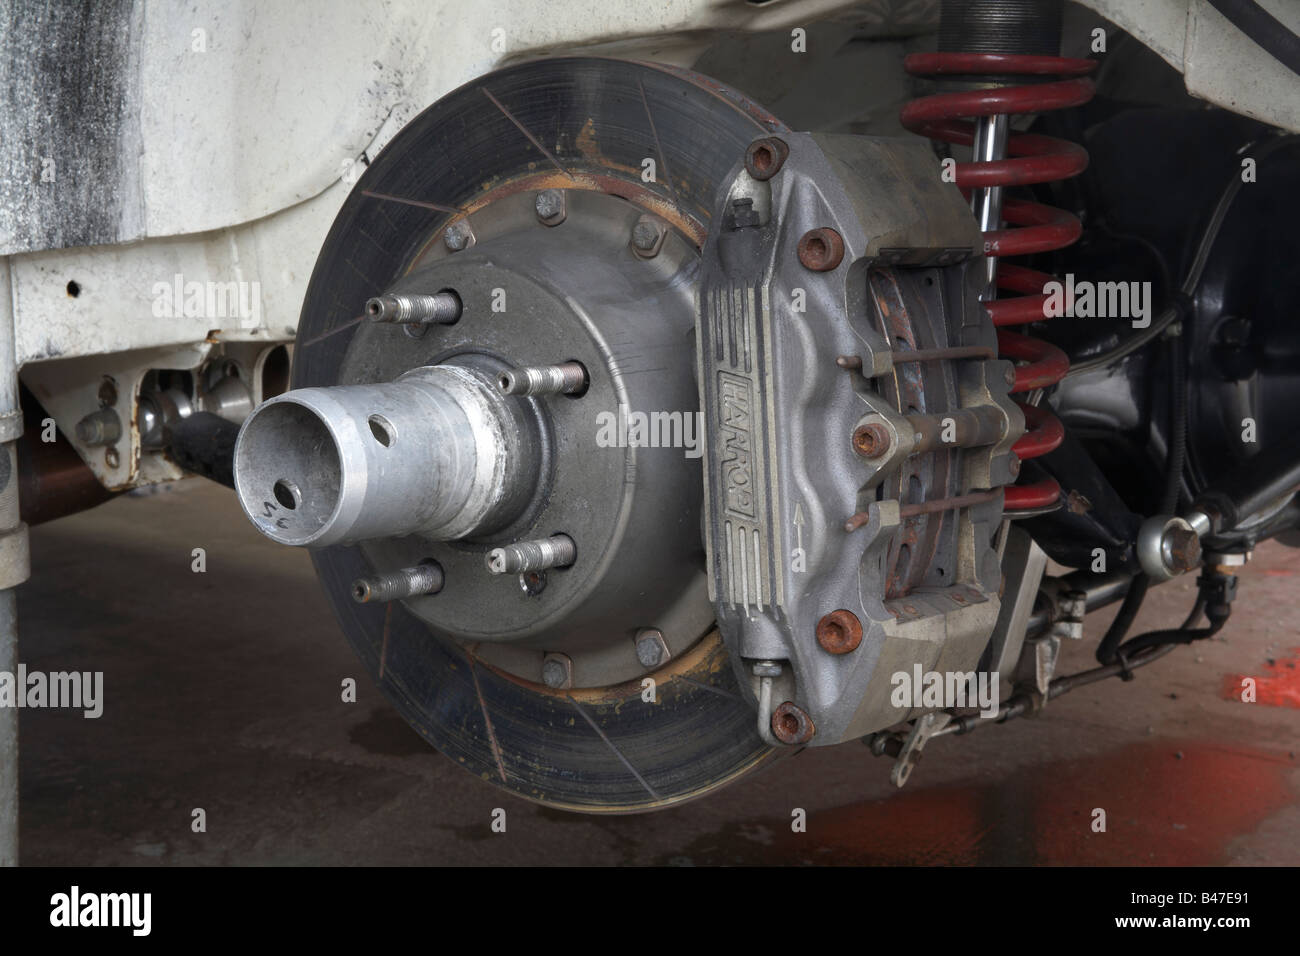 Brake disc rotor and calliper on a dedicated motorsport race car - Stock Image